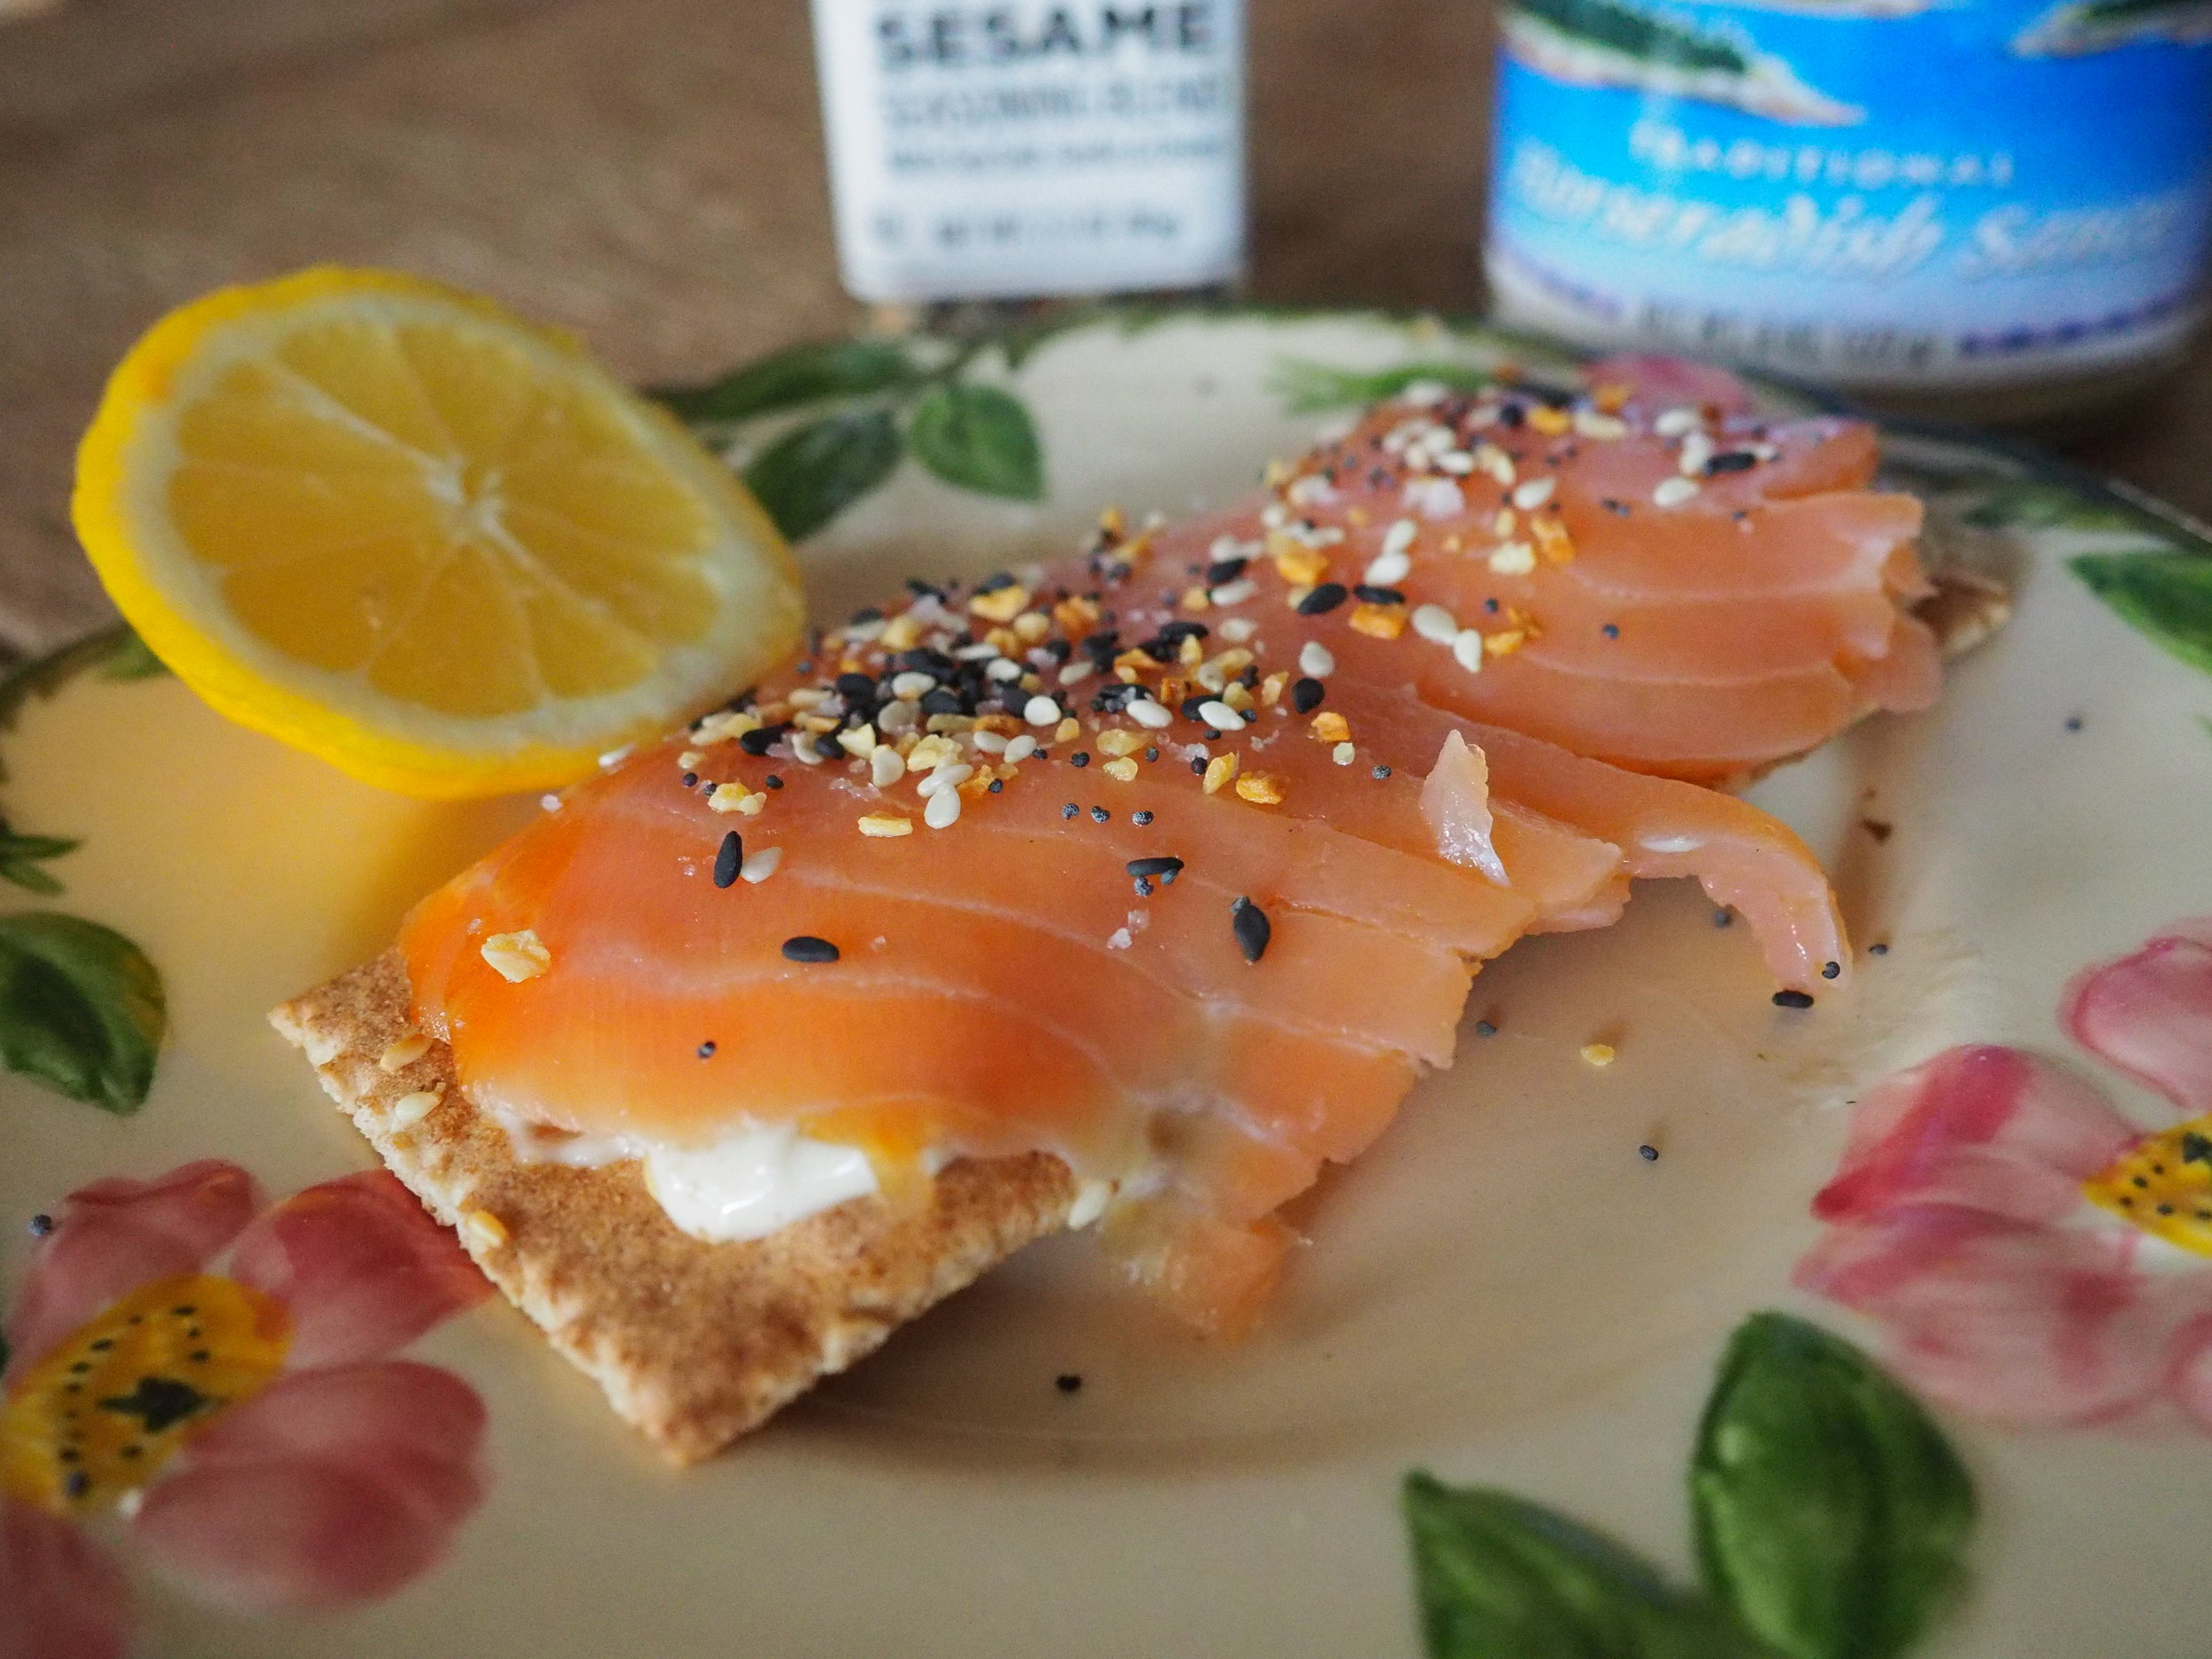 Chowhound - Five Ways to use Trader Joe's Everything but the Bagel Sesame Seasoning Blend -